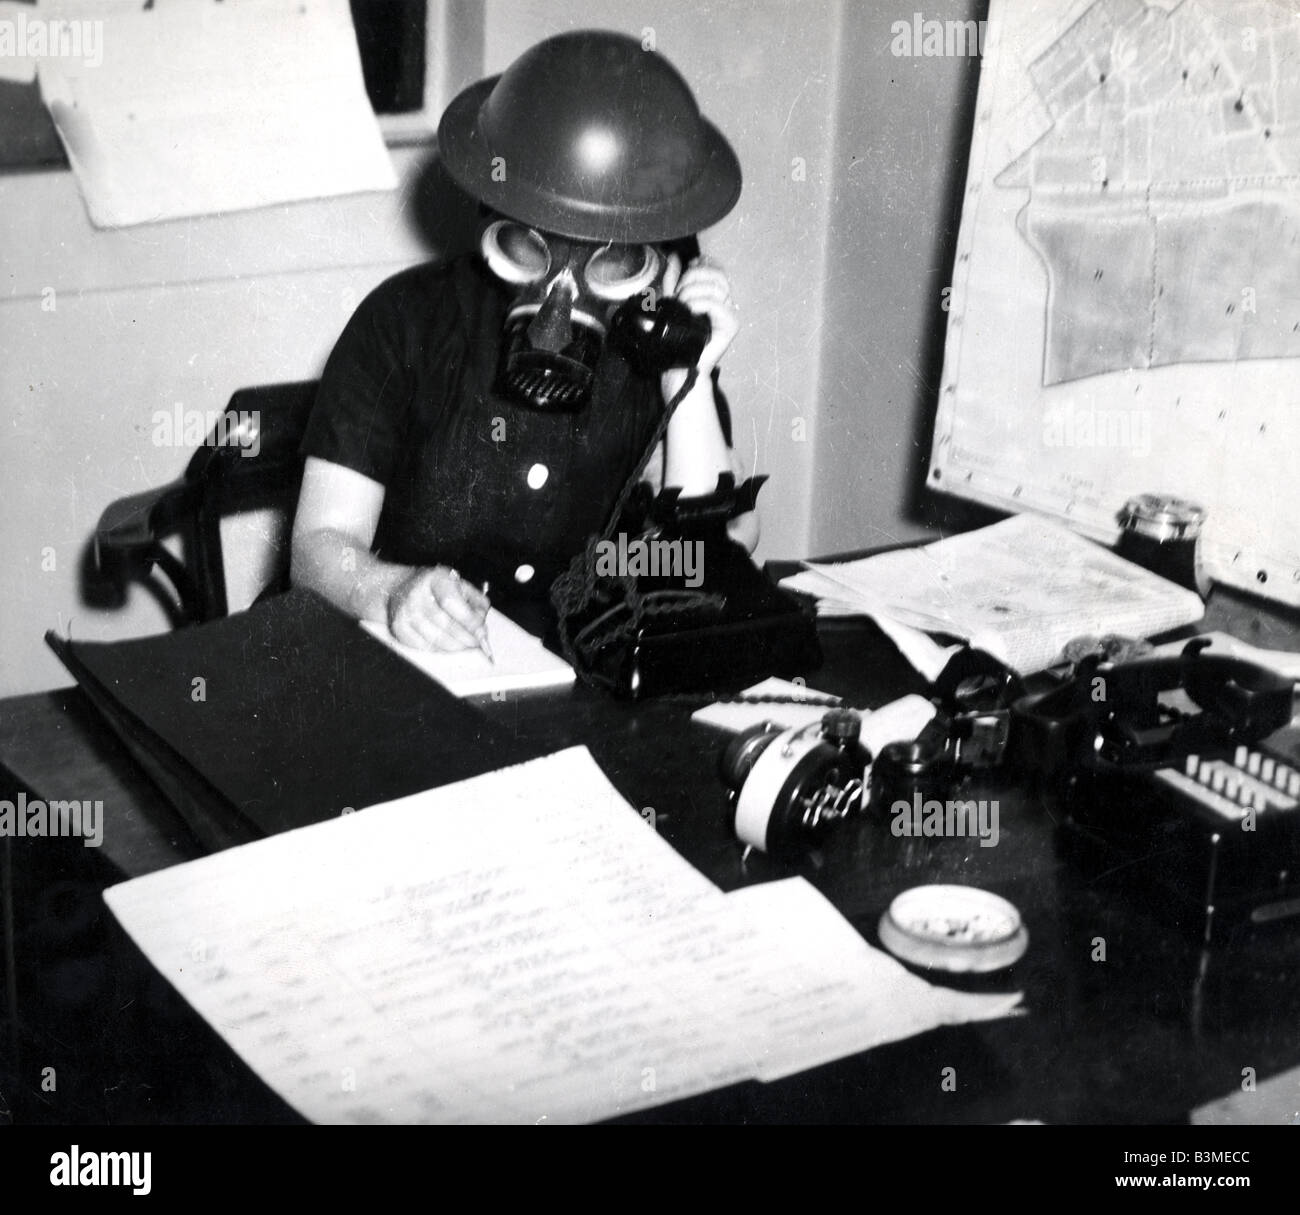 AUXILIARY FIRE SERVICE (AFS)  Volunteer fire fighter in London during World War Two - Stock Image